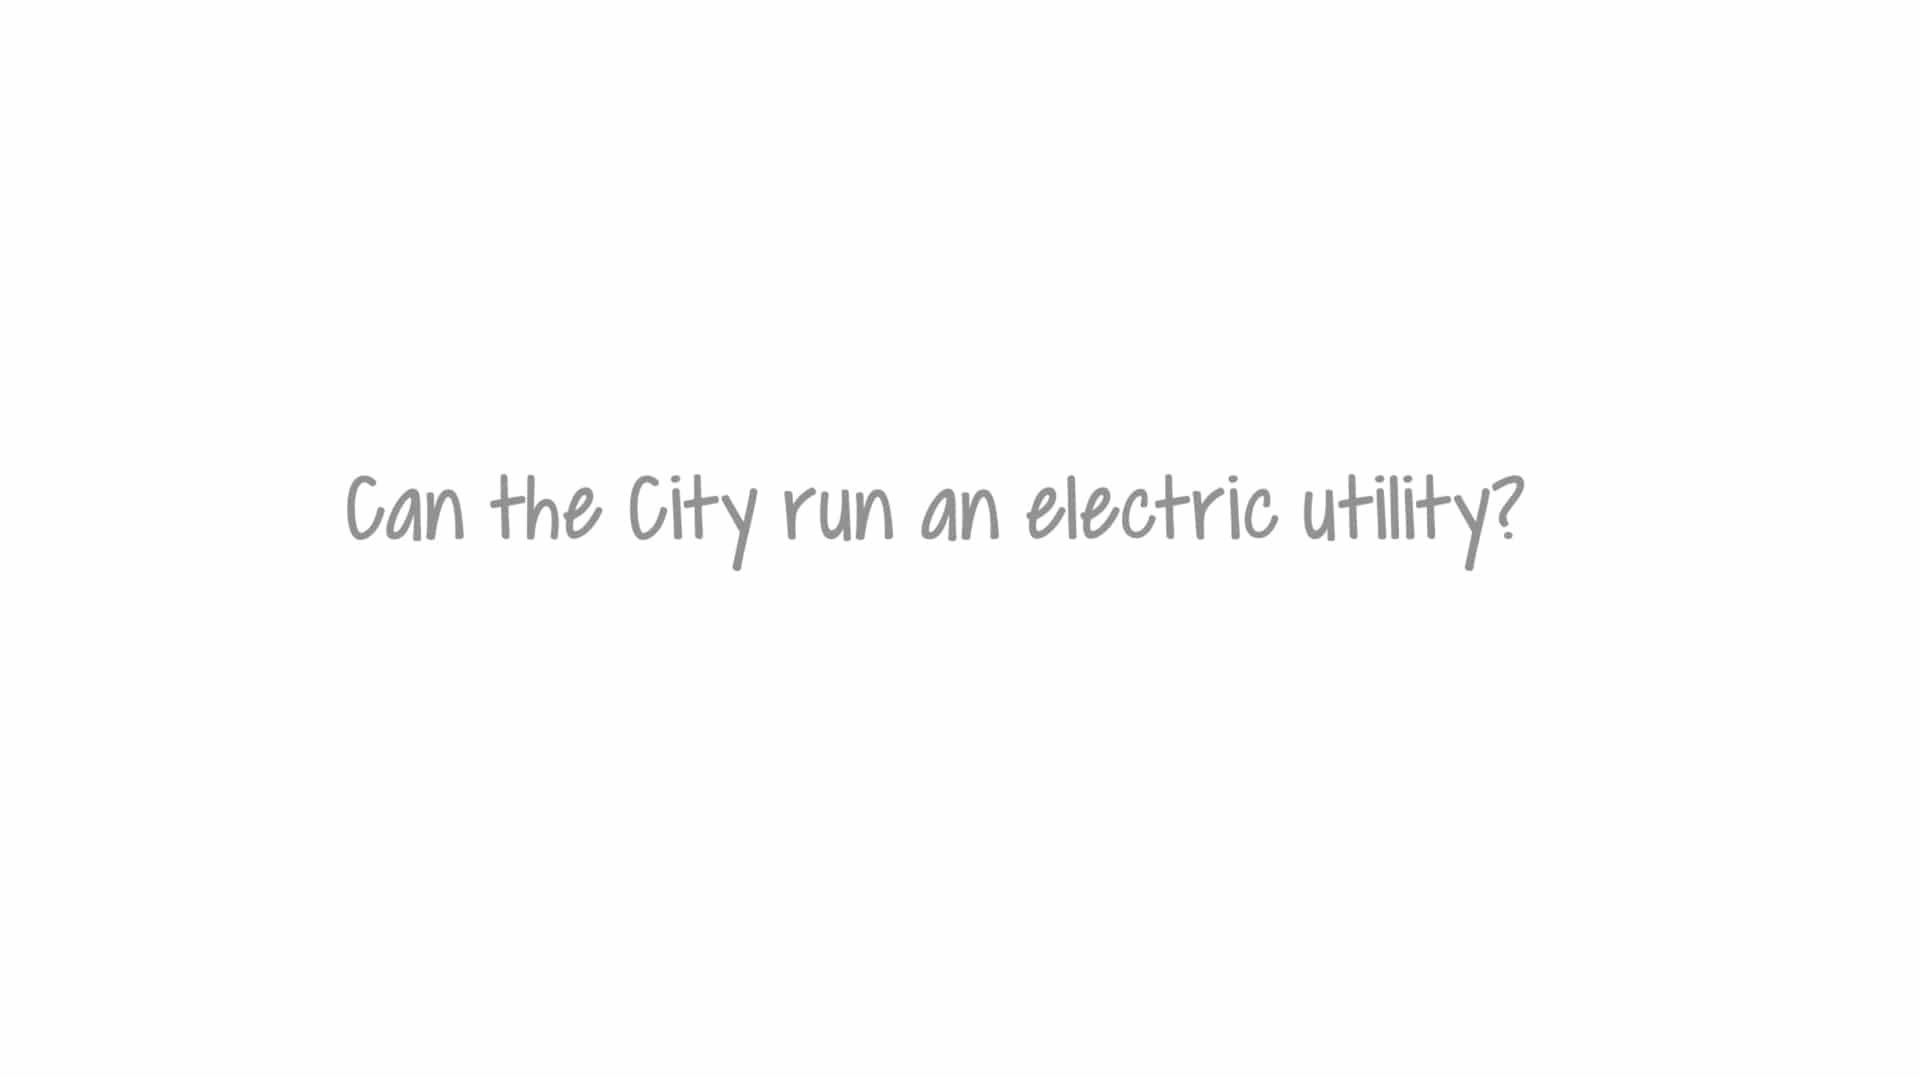 Can the city run electric utility?